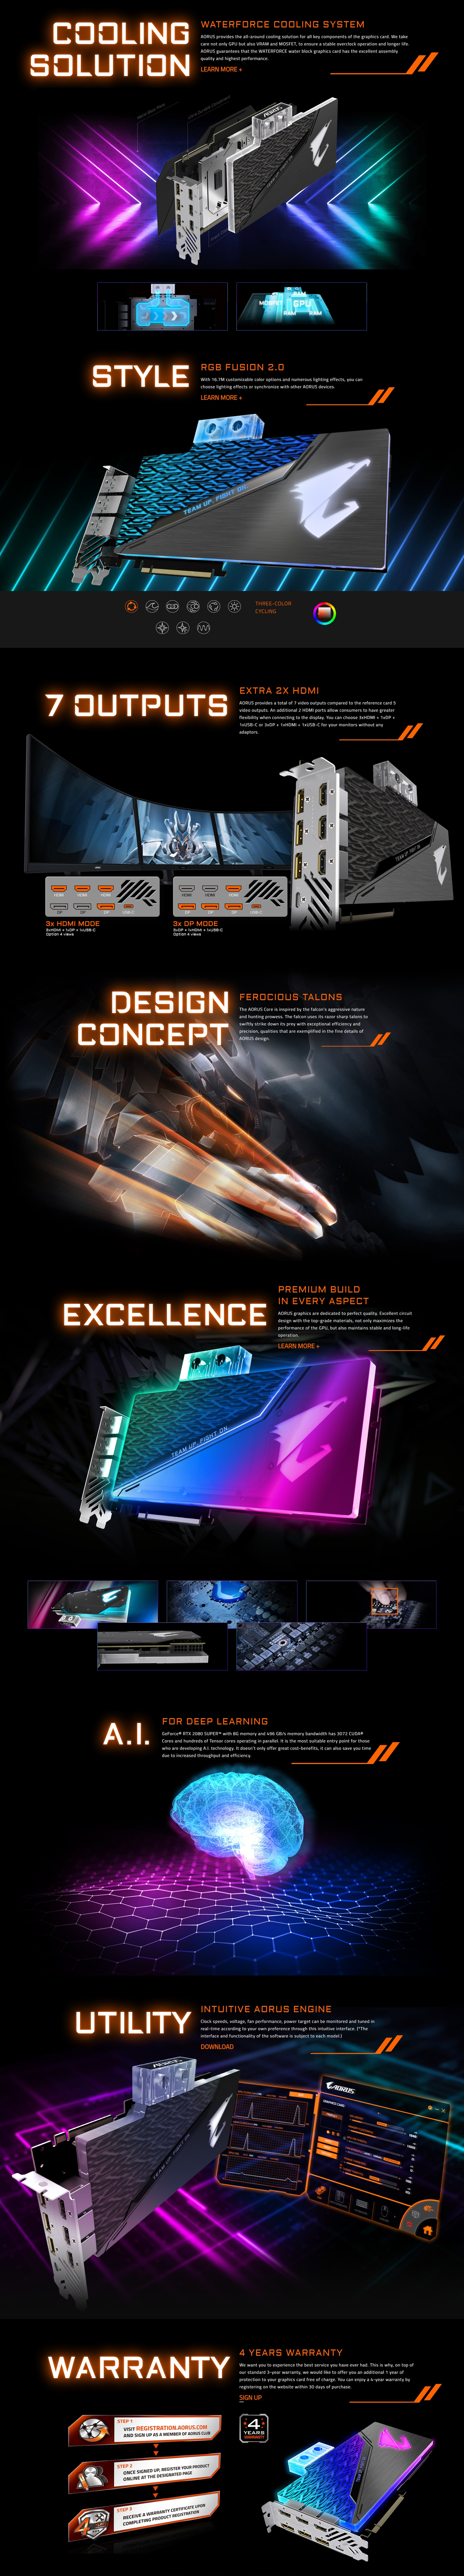 A large marketing image providing additional information about the product Gigabyte GeForce RTX2080 SUPER XTREME WATERFORCE WB 8GB GDDR6 - Additional alt info not provided